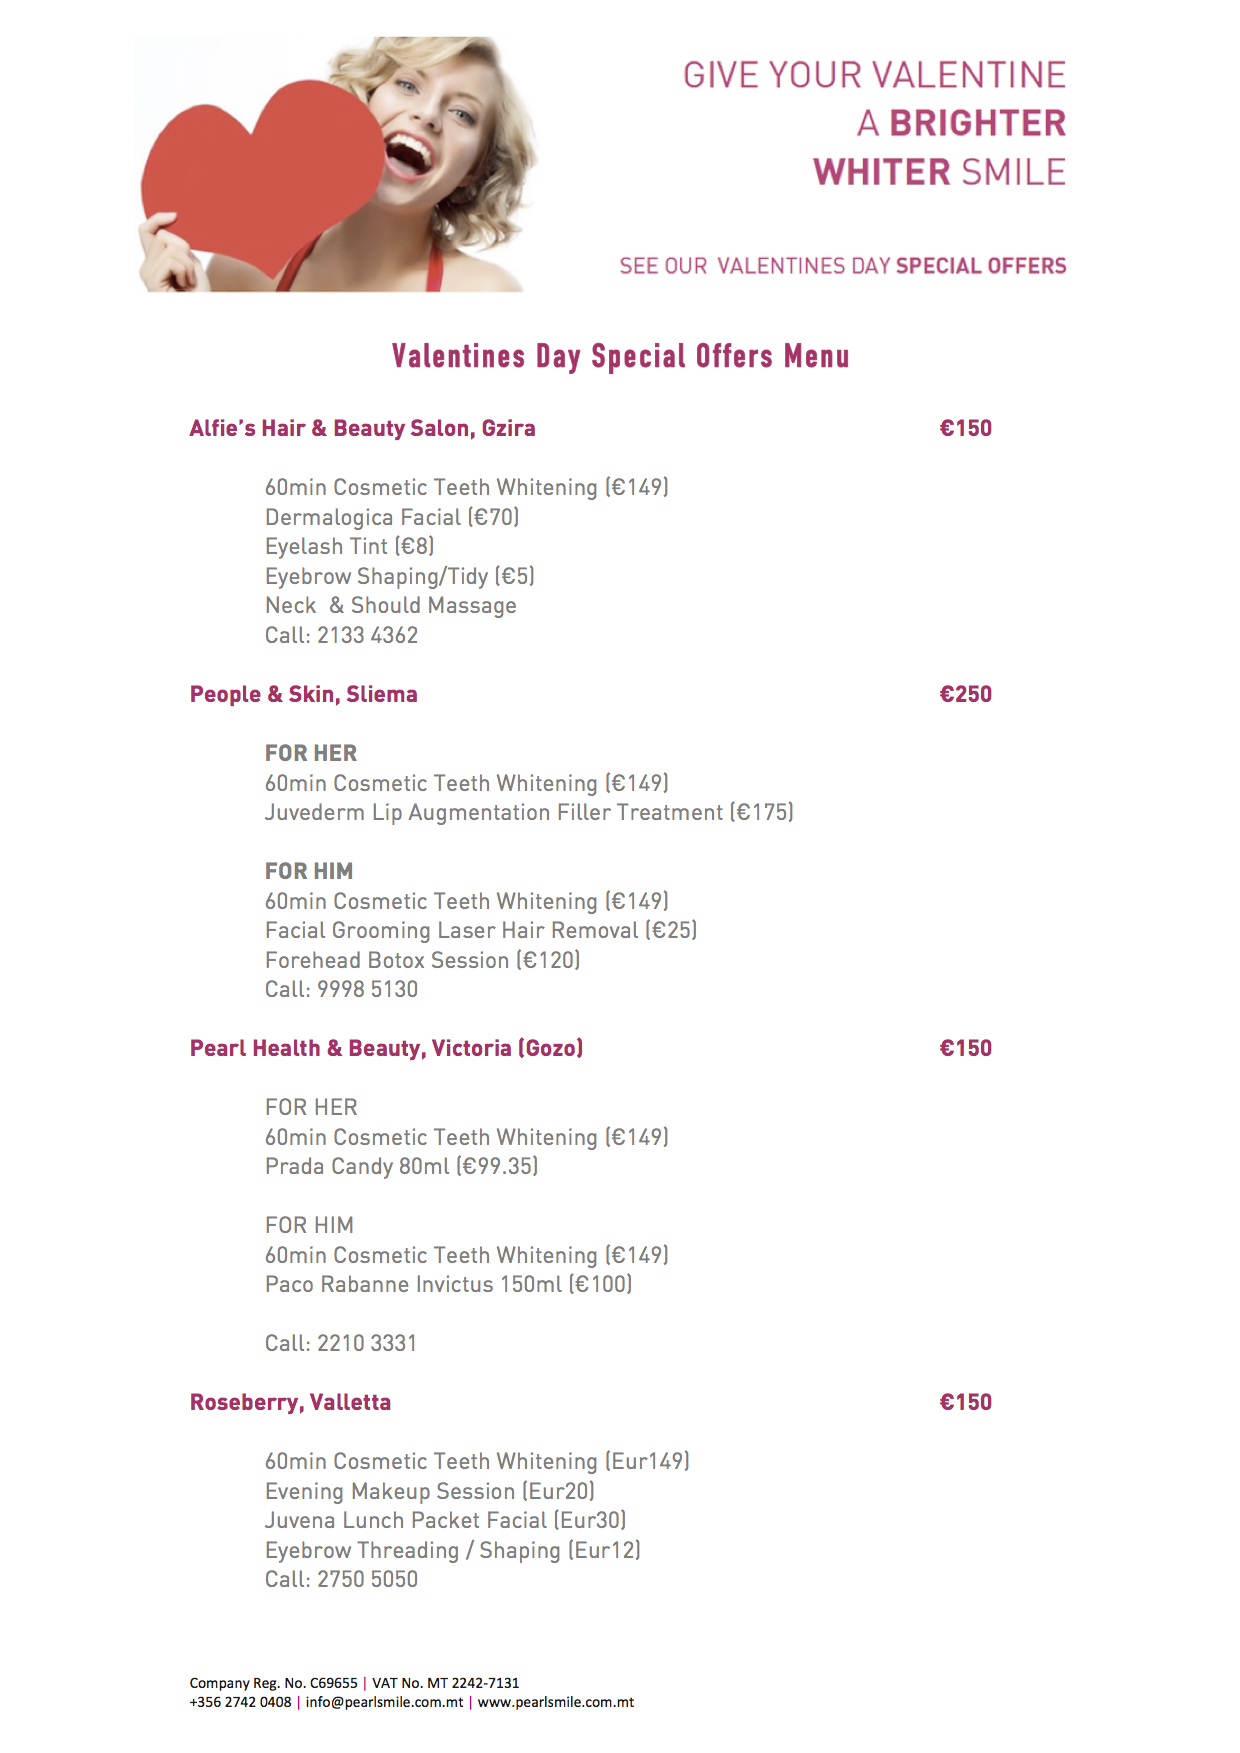 Valentines Day Special Offers Menu